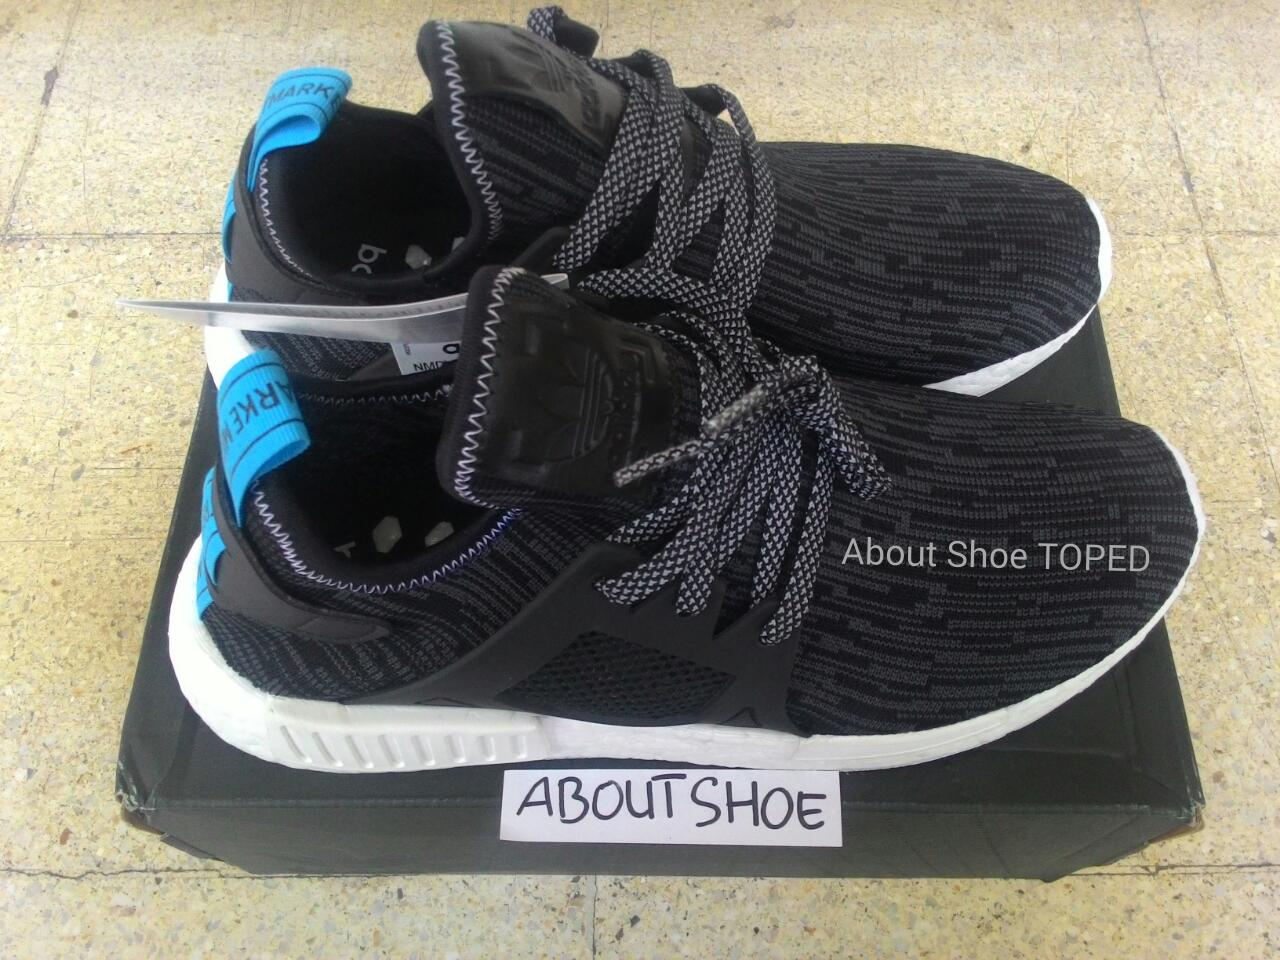 UA NMD XR1 Duck Camo Black for Sale, Best Air Max Sneakers Hot